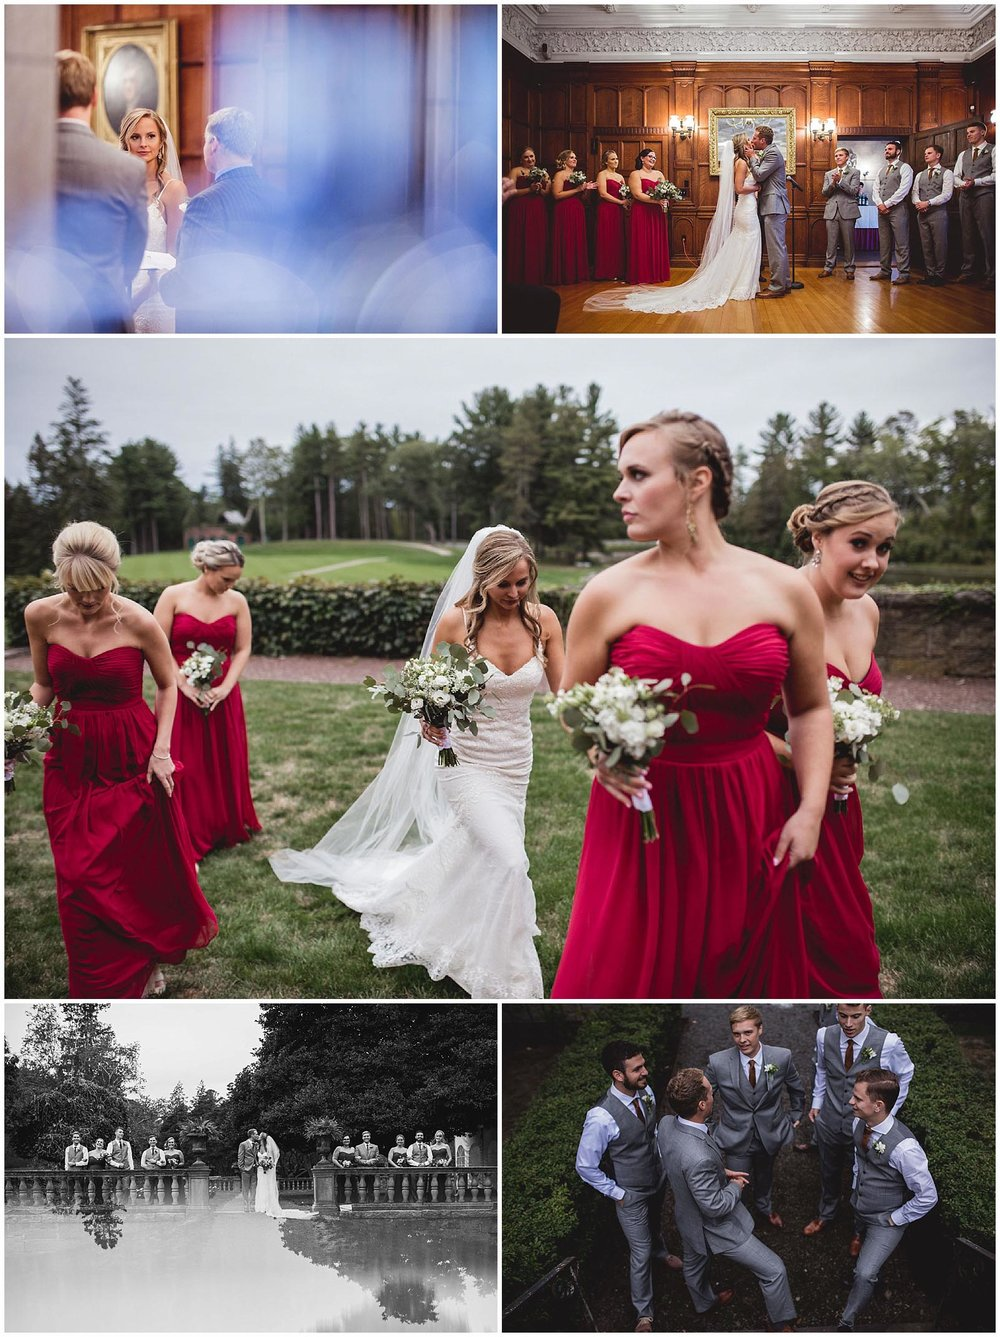 Tupper-Manor-Wedding-Ebersole-Photo-6.jpg